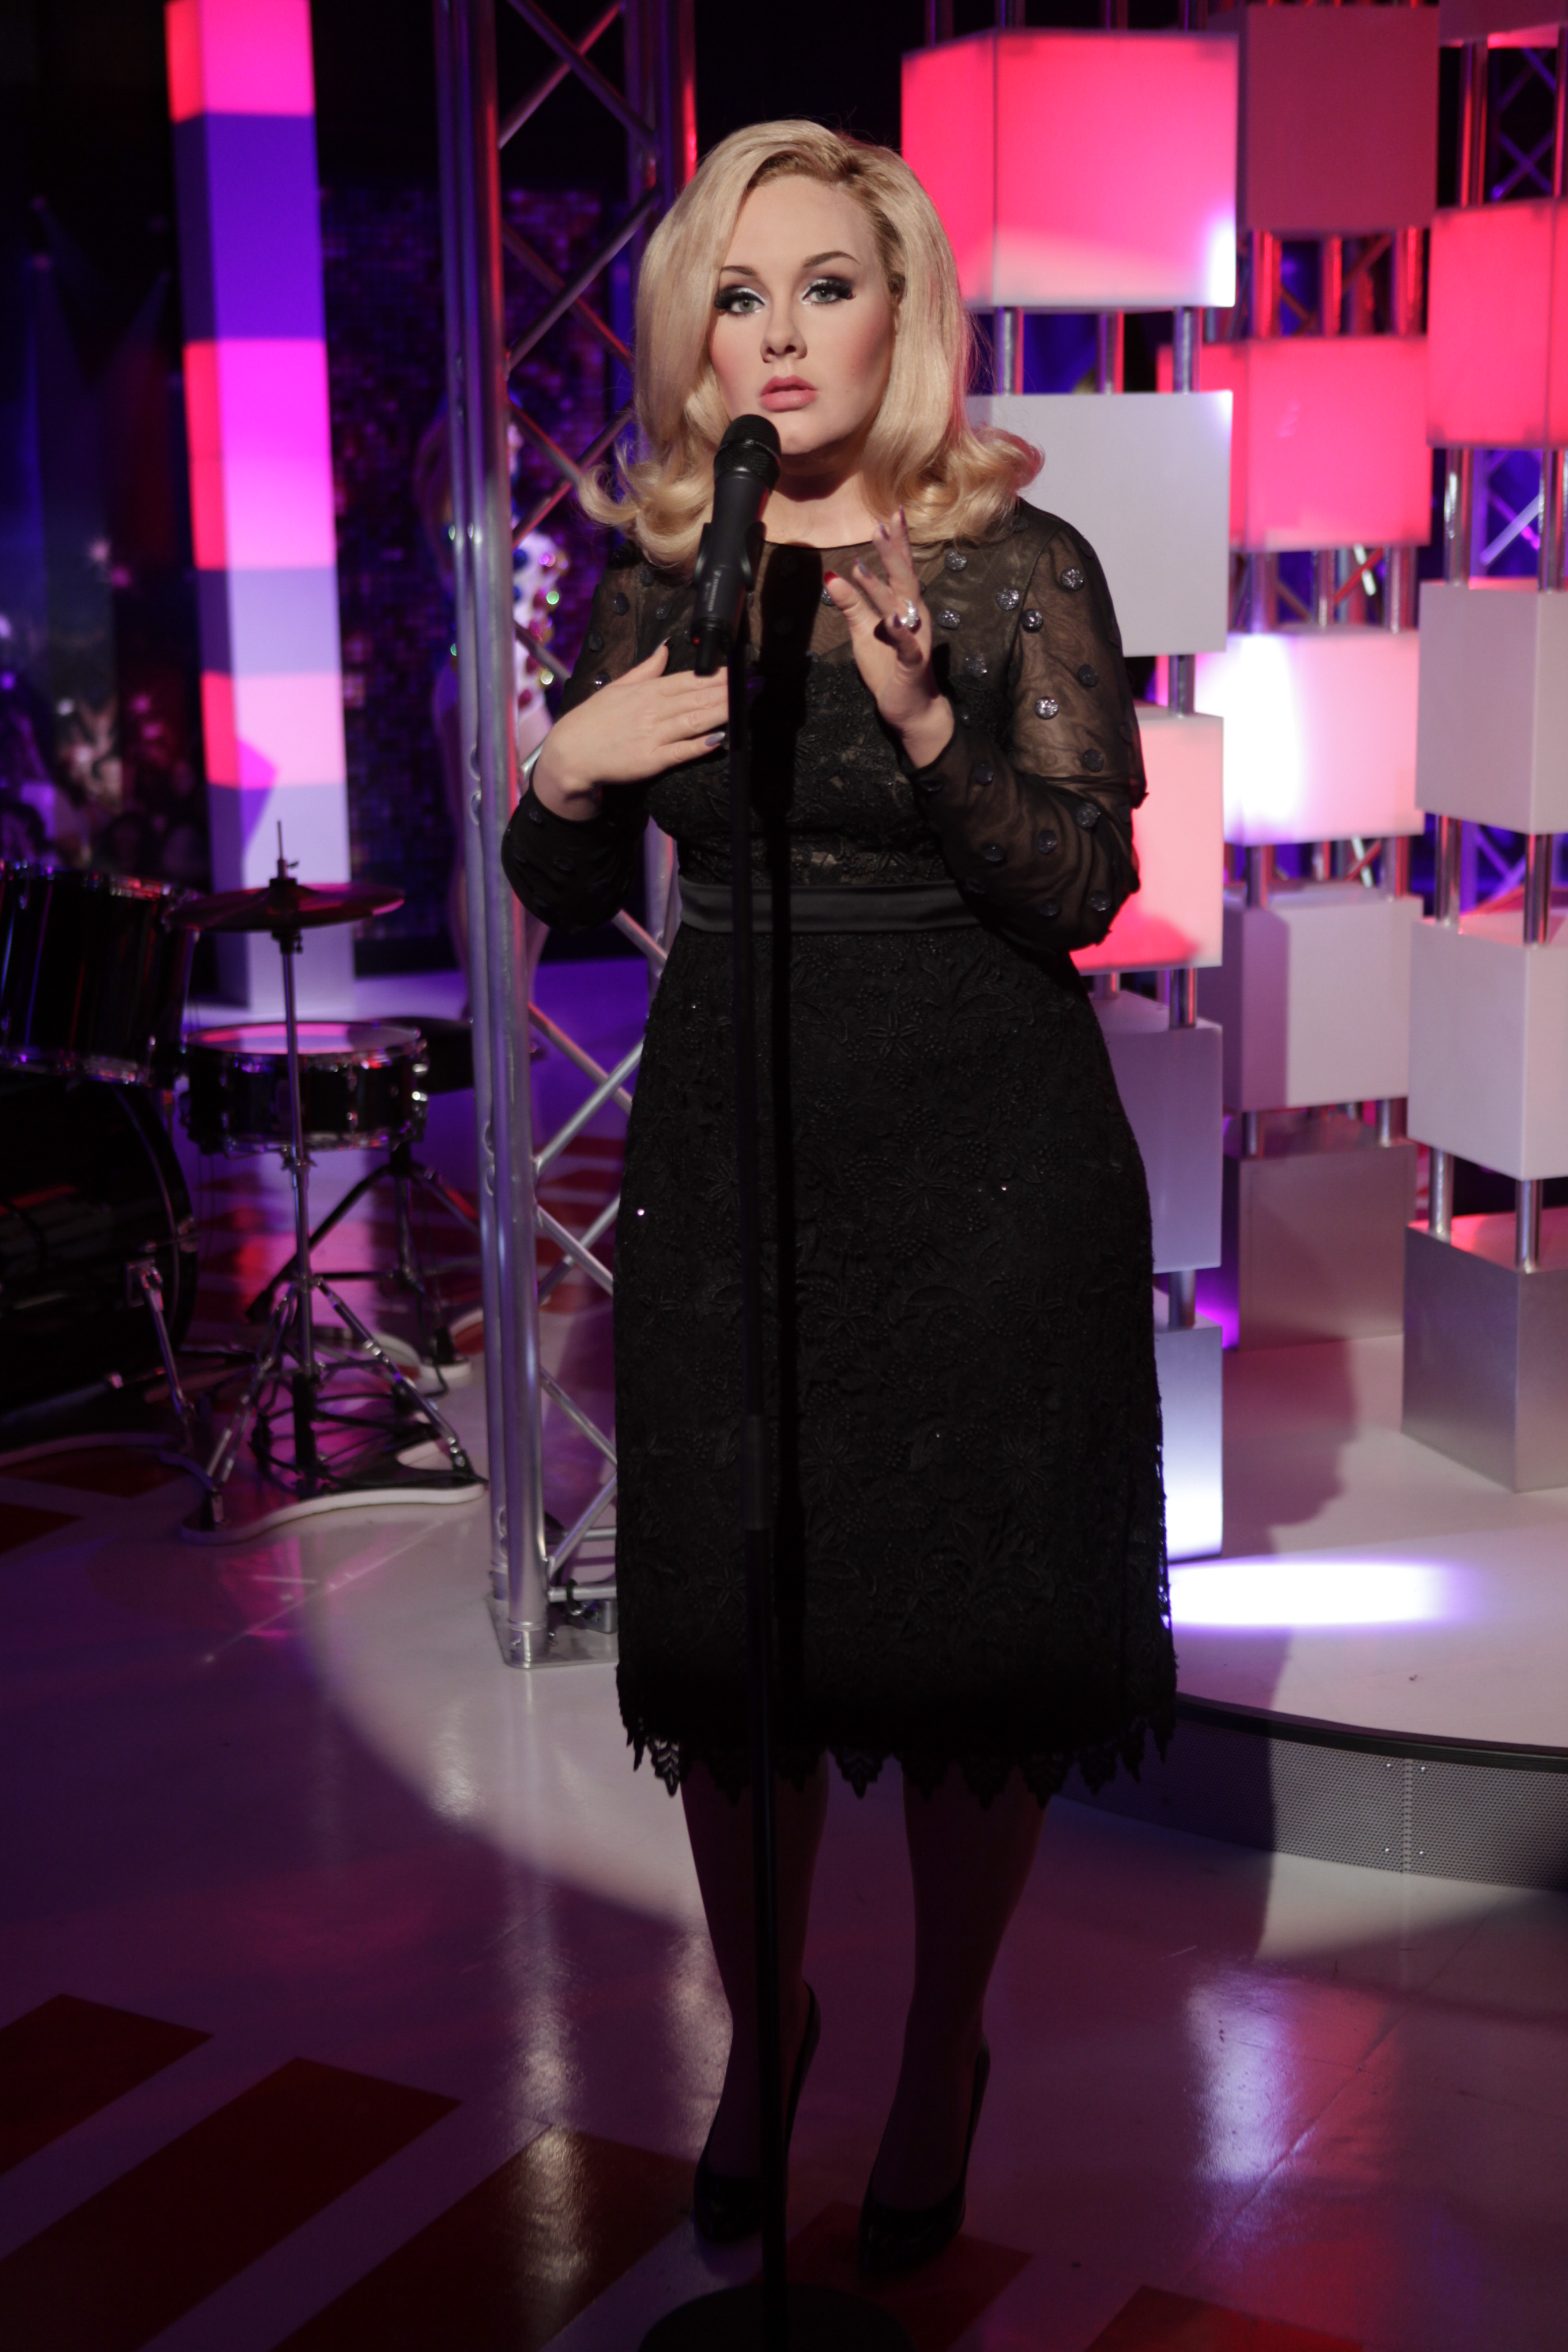 Wax Figure Of Singer Adele Makes Highly Anticipated US